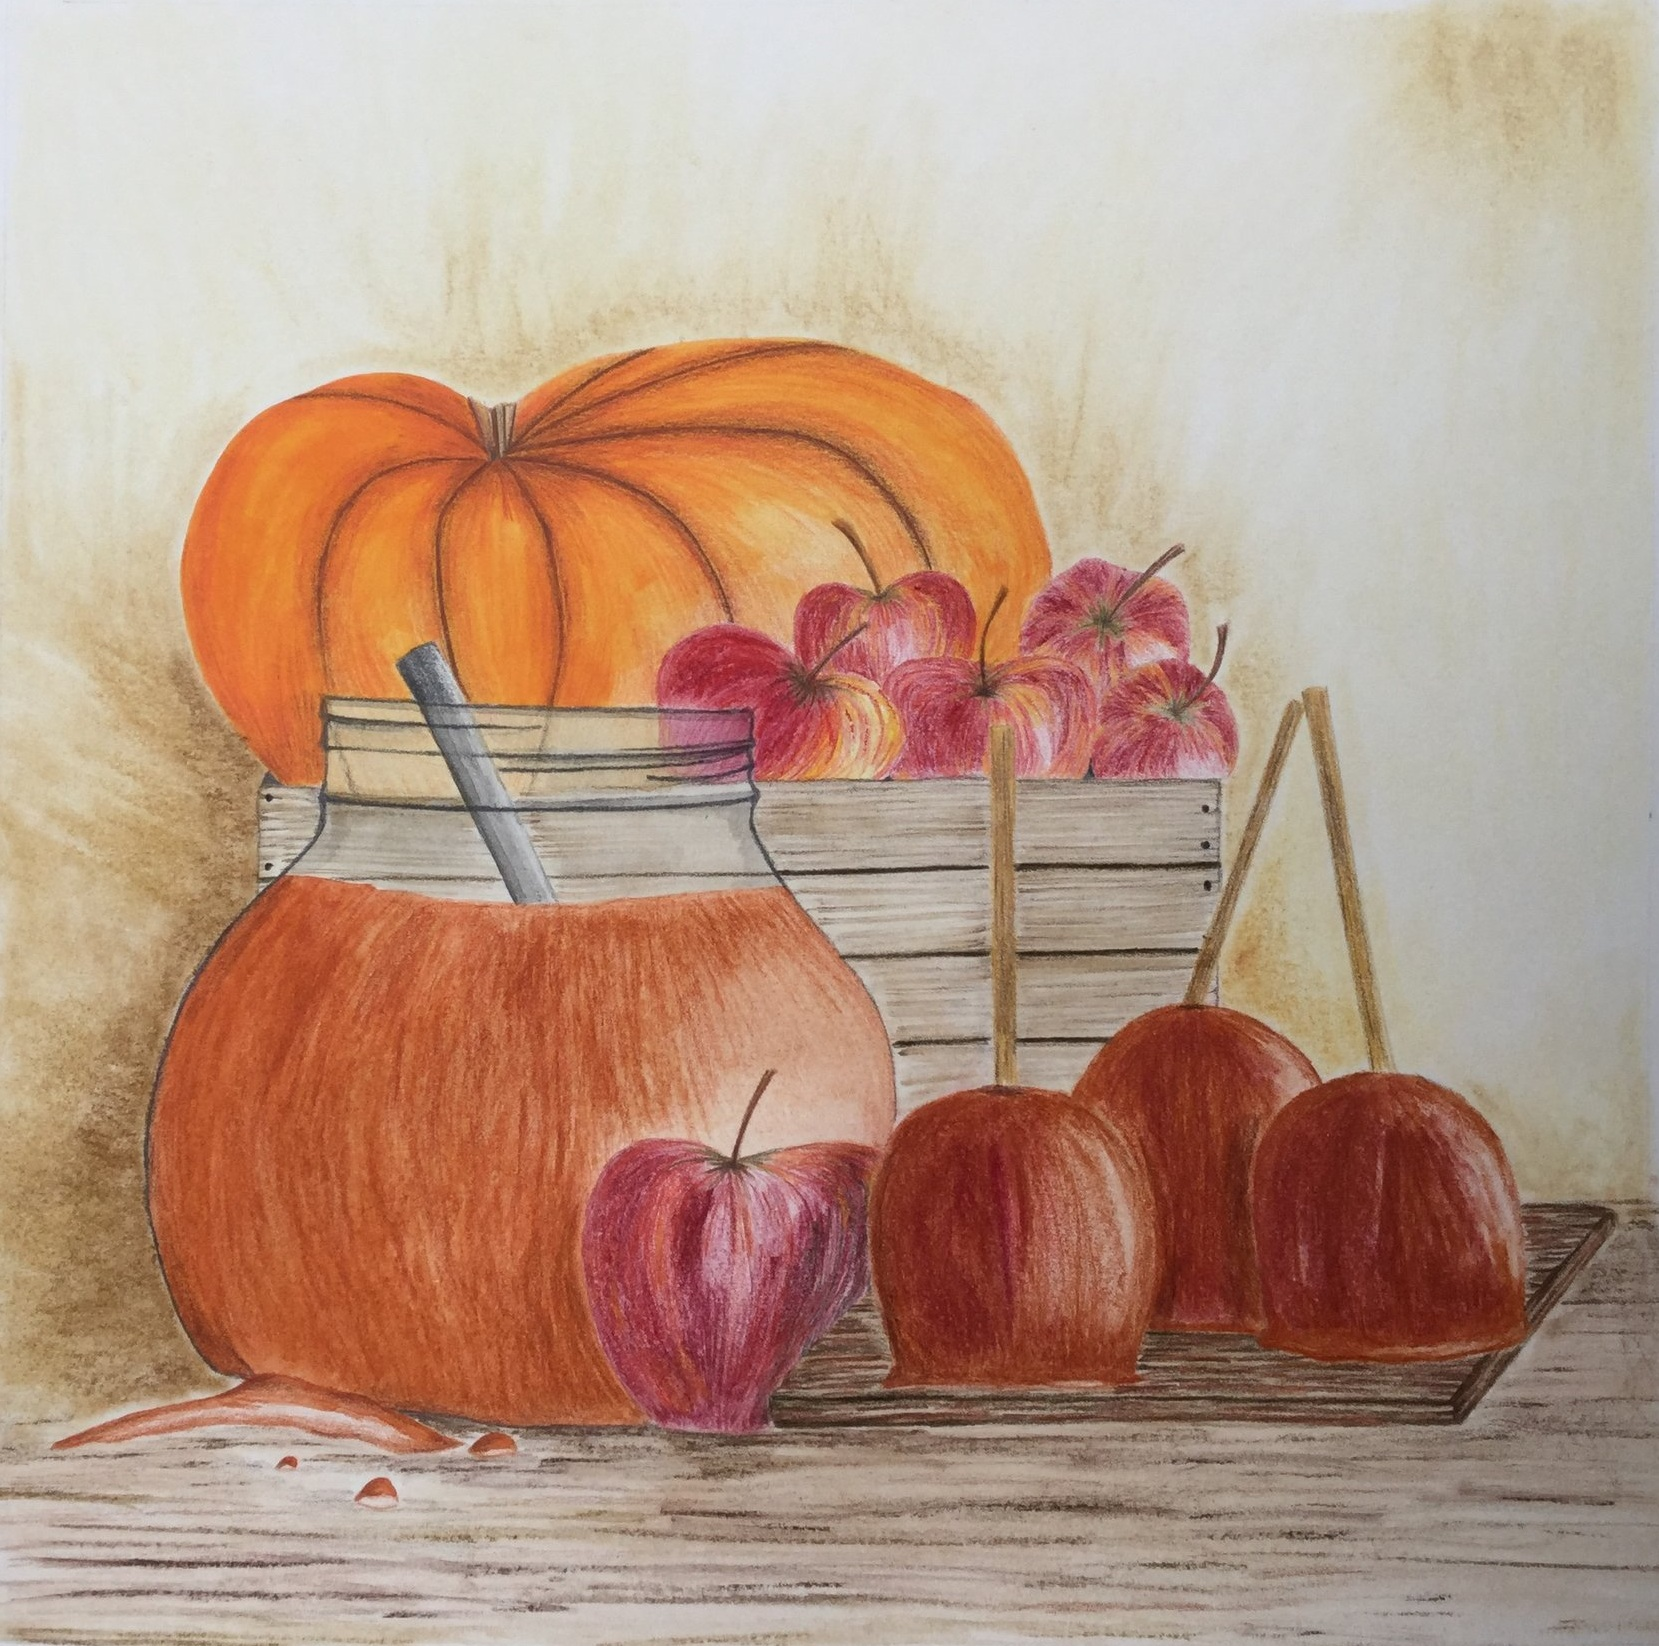 Copy of Autumn illustration by Briony Dixon